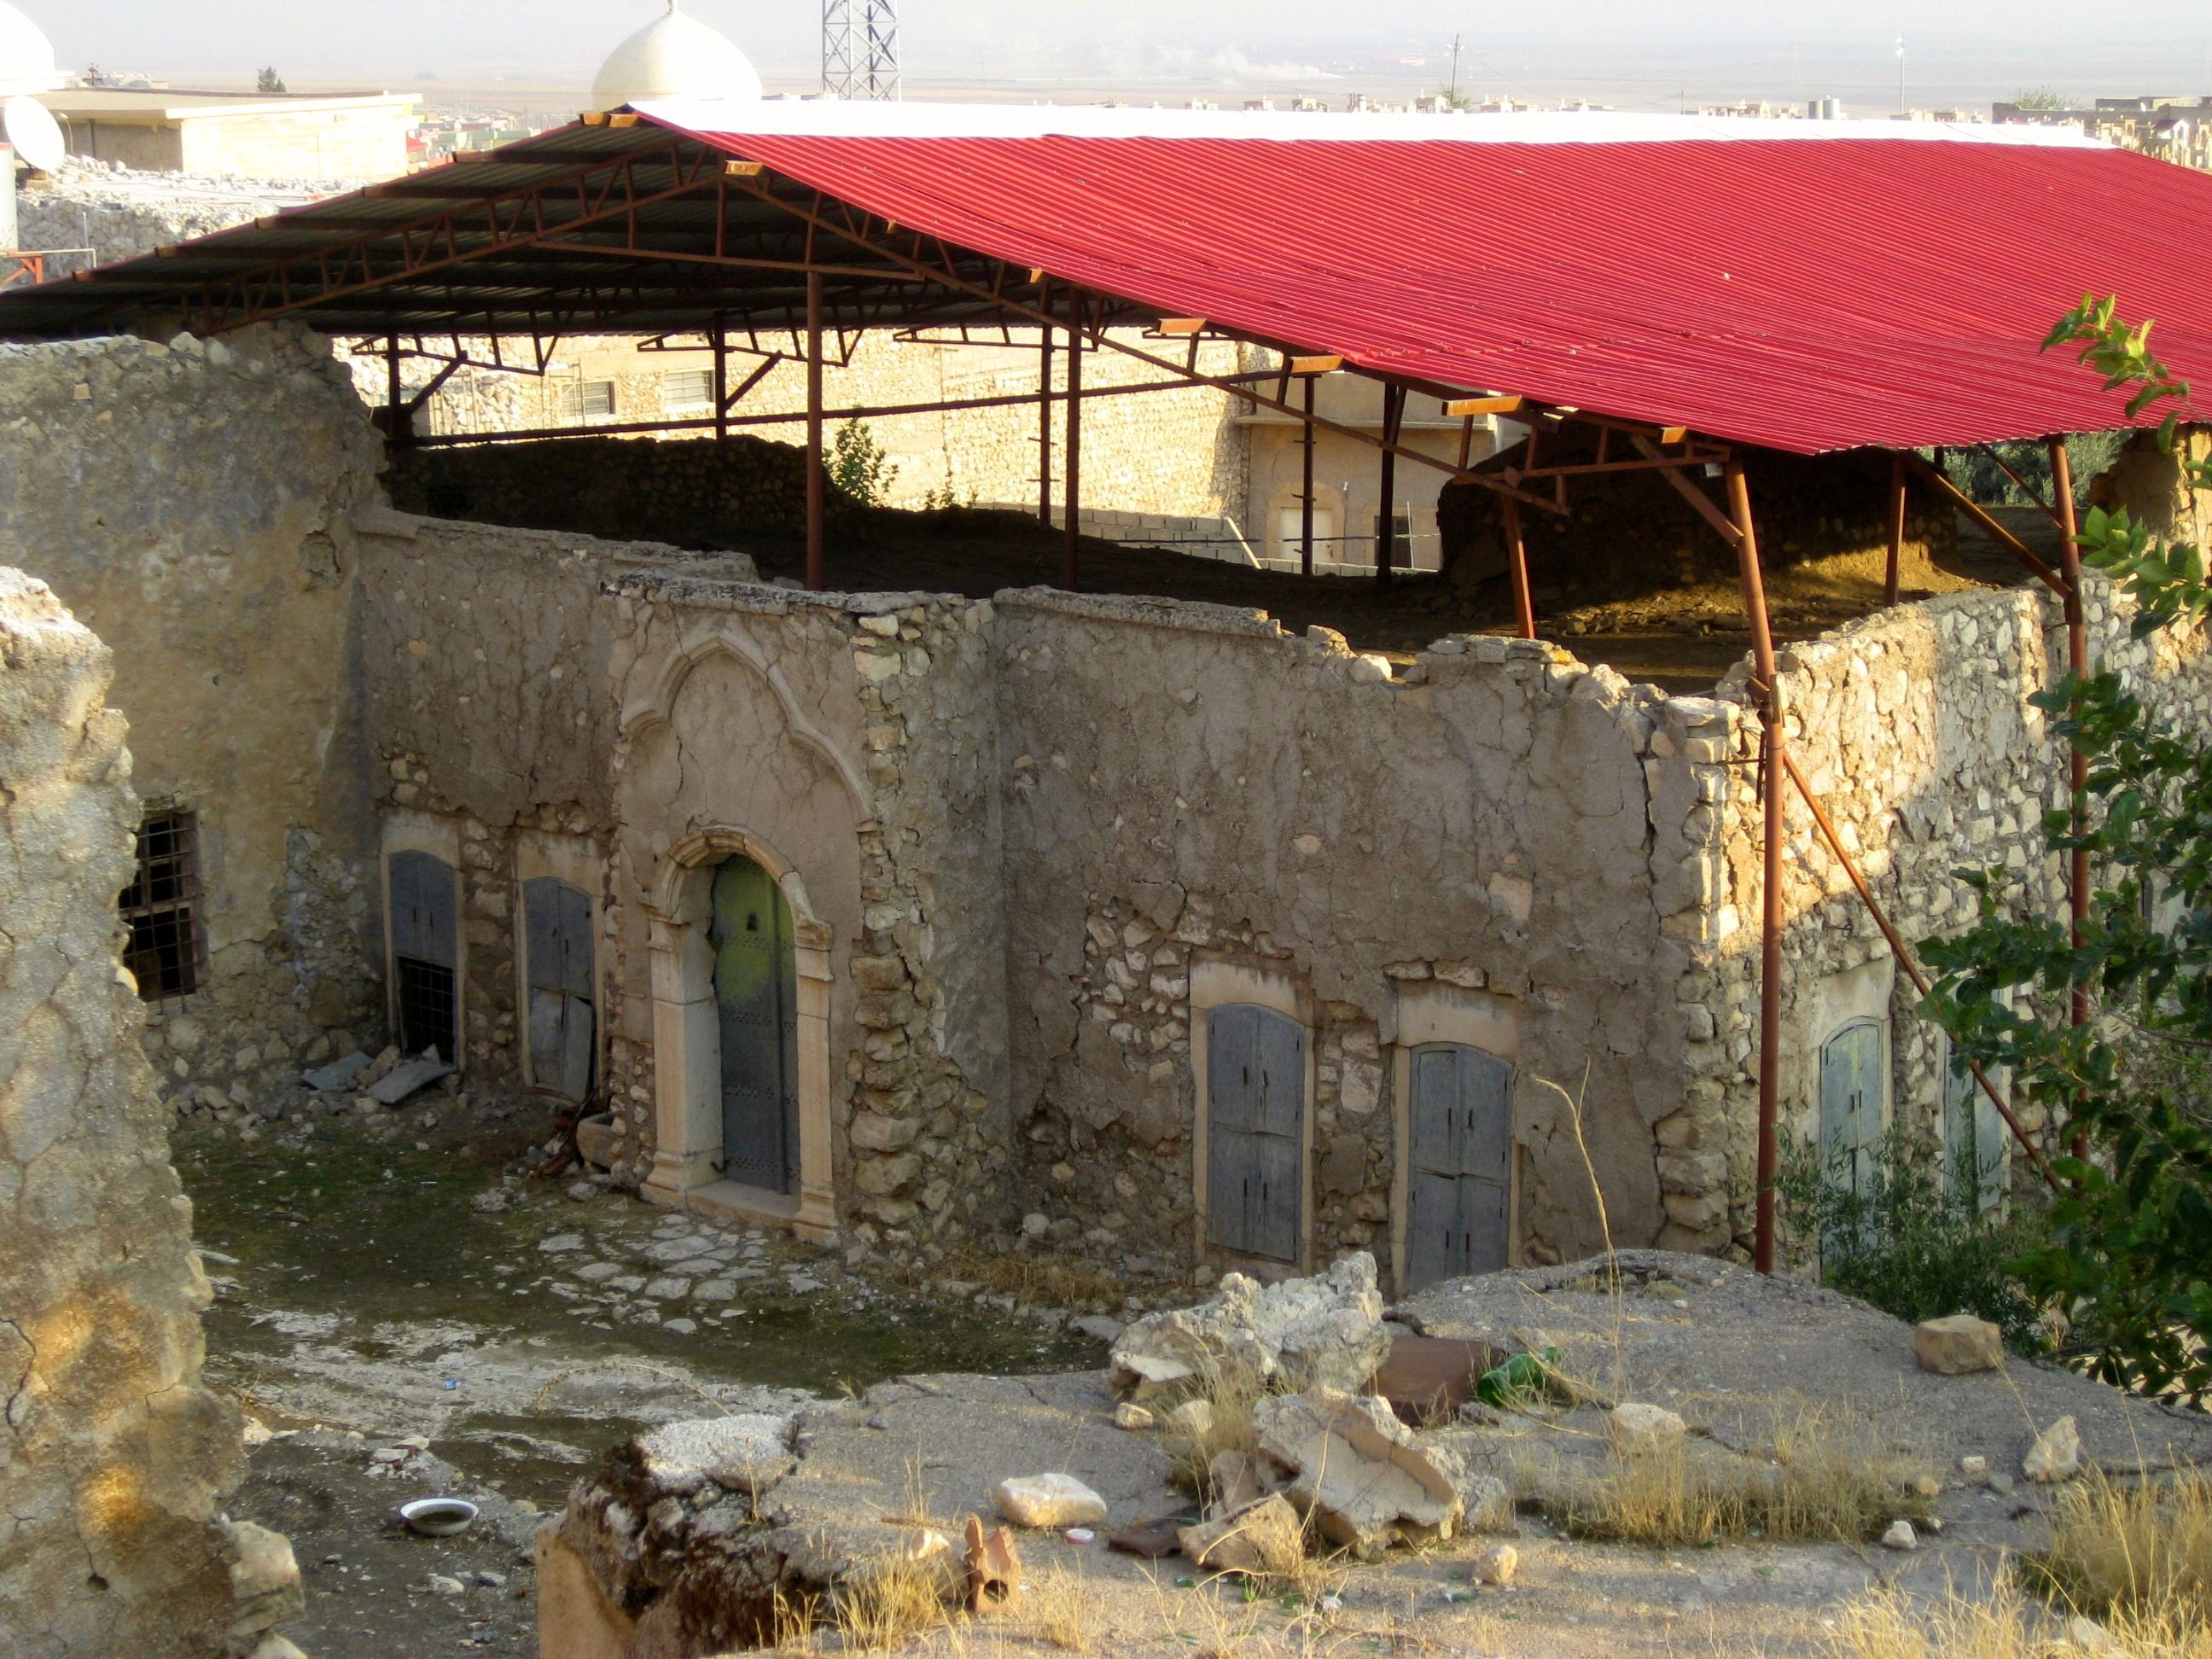 Perilous Pilgrimage: The purported tomb of the prophet Nahum is housed in in an abandoned synagogue, the last Jewish structure still standing in Northern Iraq.